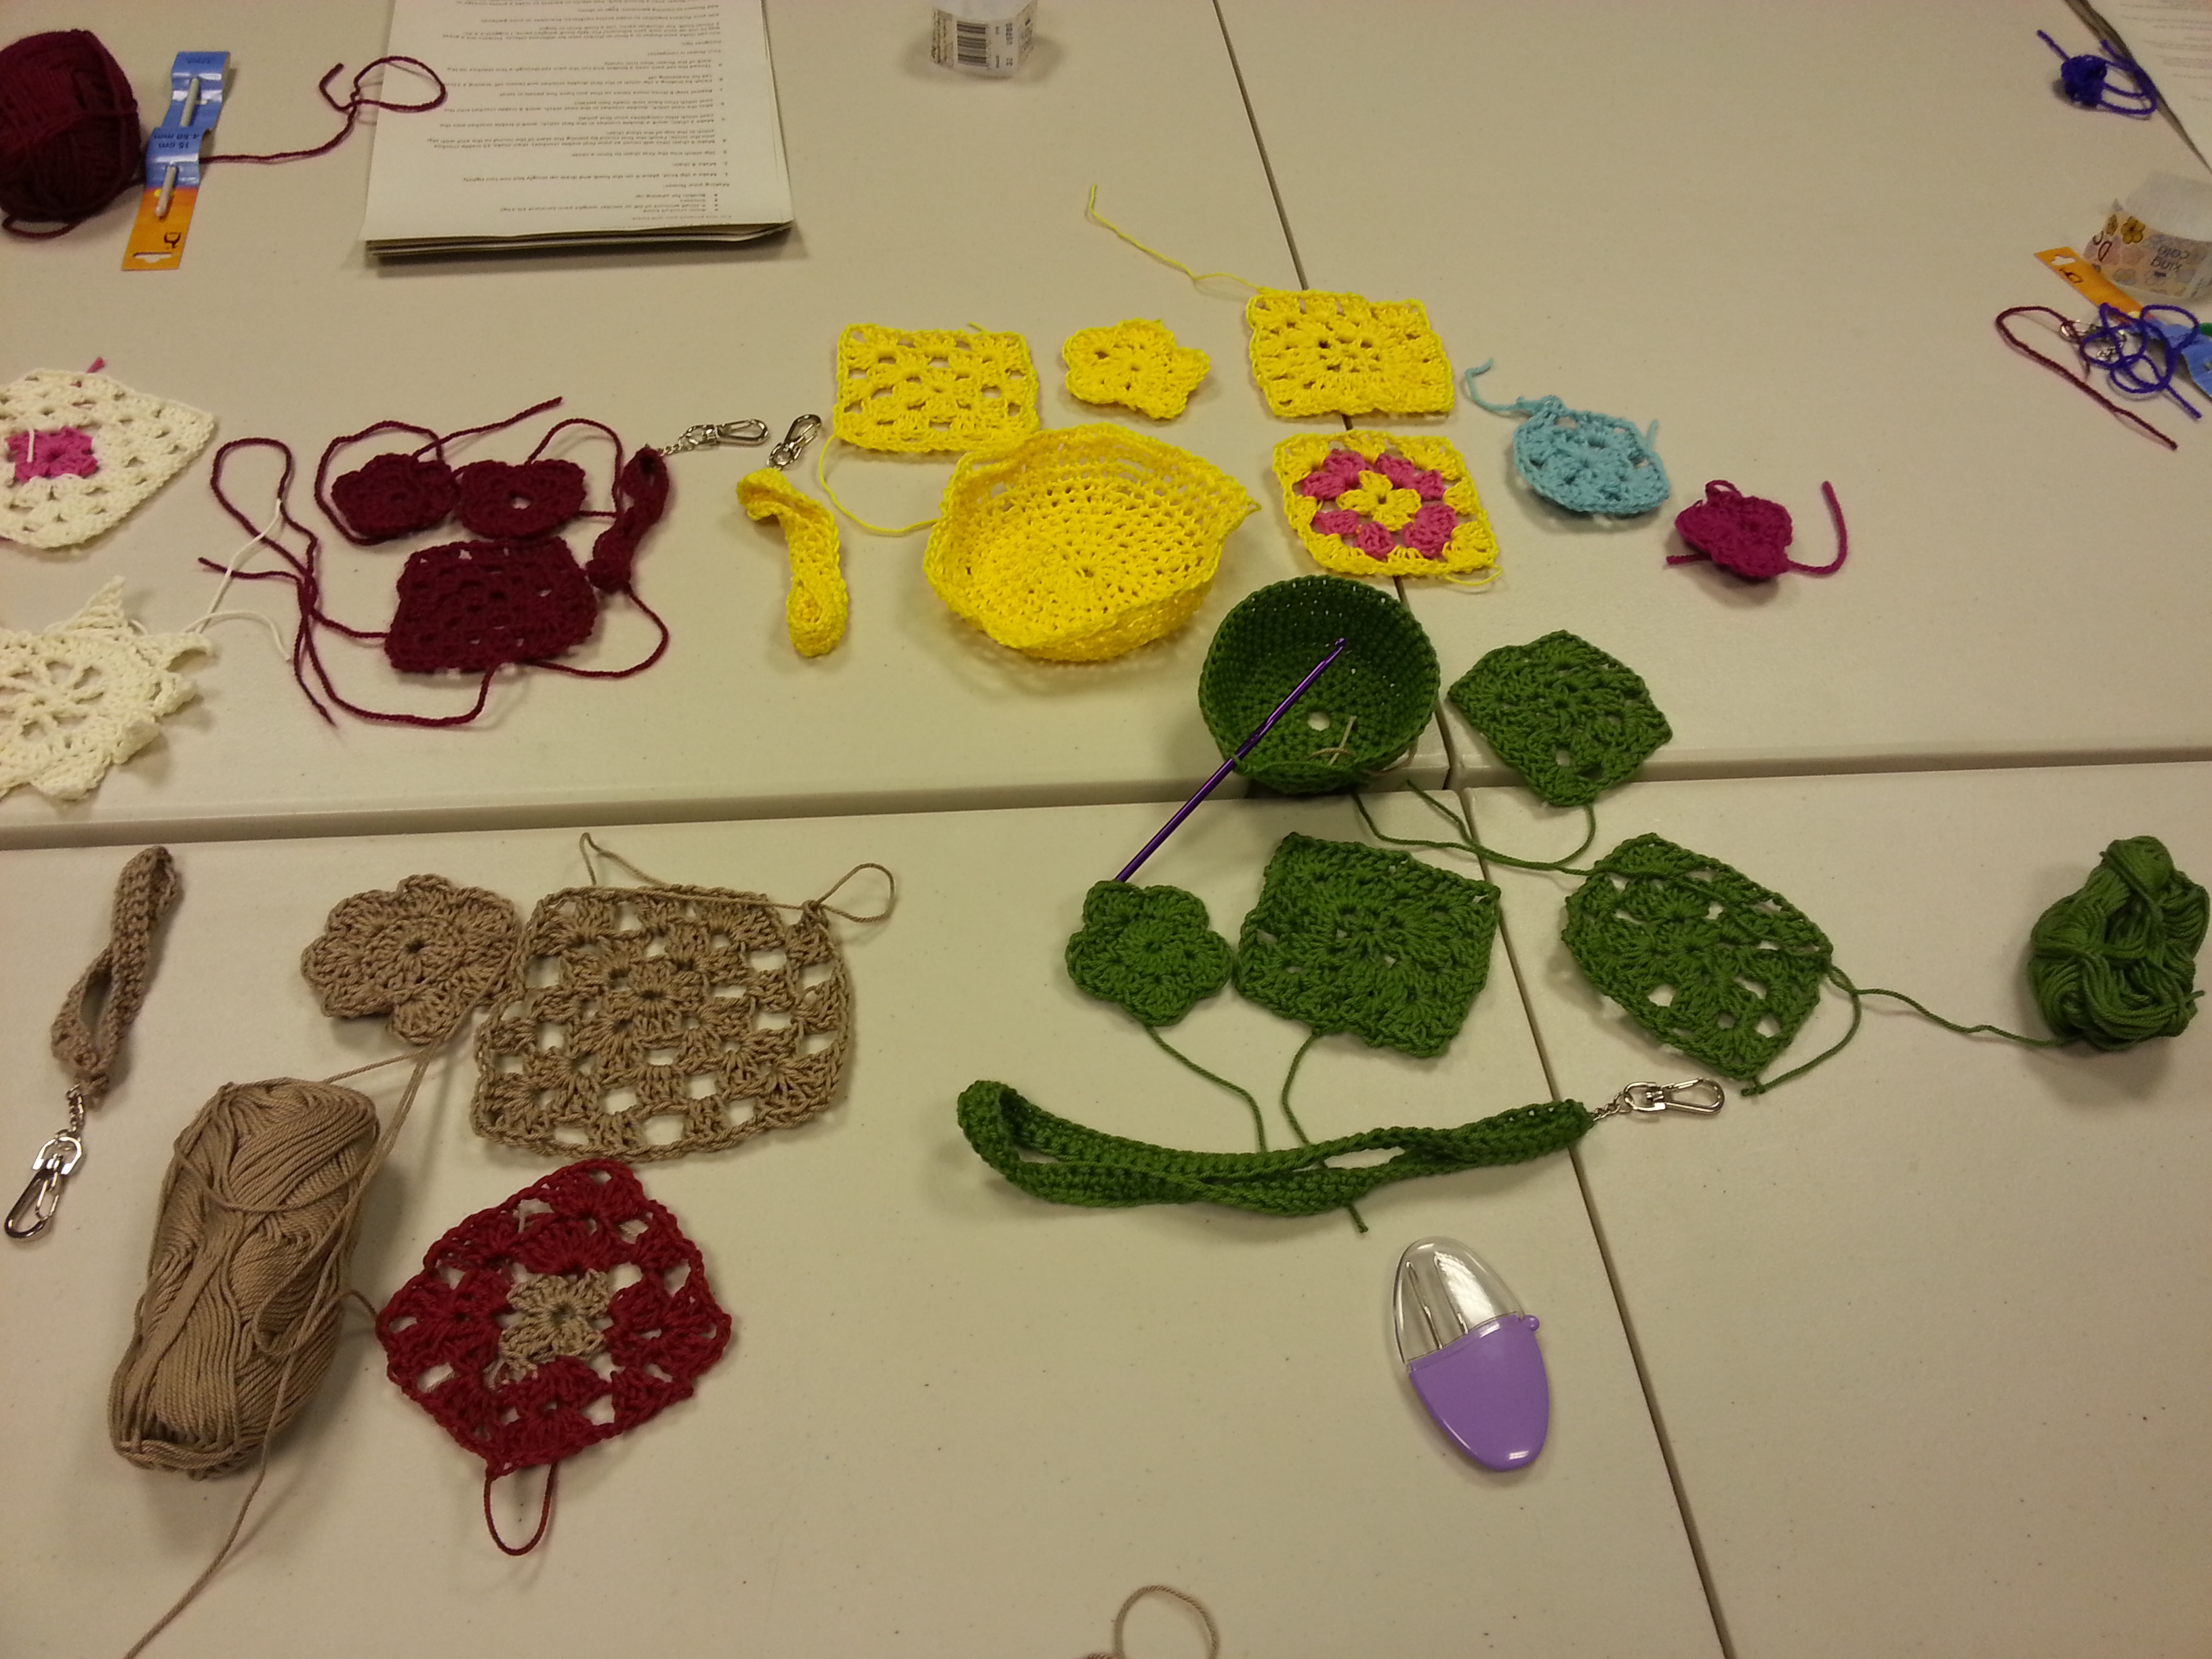 Workshops & Courses with Debbie Tomkies - Crochet for Beginners